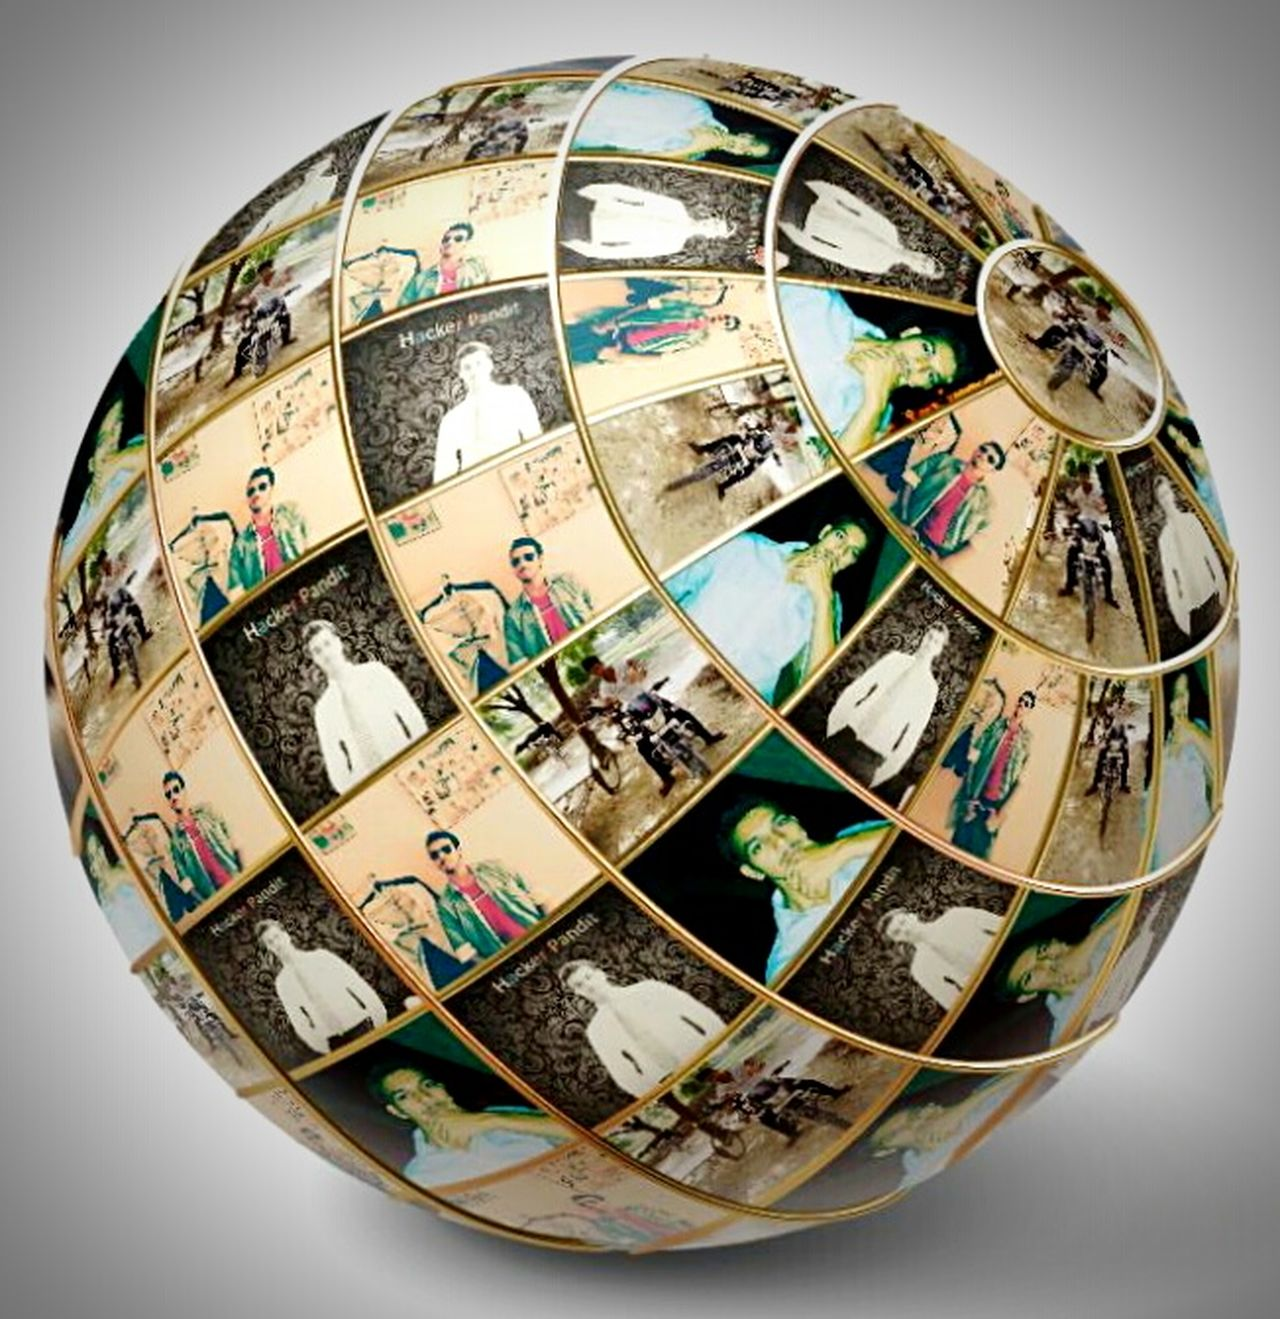 43 Golden Moments If You Look The Right Way, You Can See That The Whole World Is A Garden. Hackers Adventure Style Attitude That's Me Indian Army Indianphotography Saurabh Global_stars Saurabh Dubey Hackerpandit Thriller Inspirational Celebrity Rockstar Don With Saurabh Globe Globe_travel